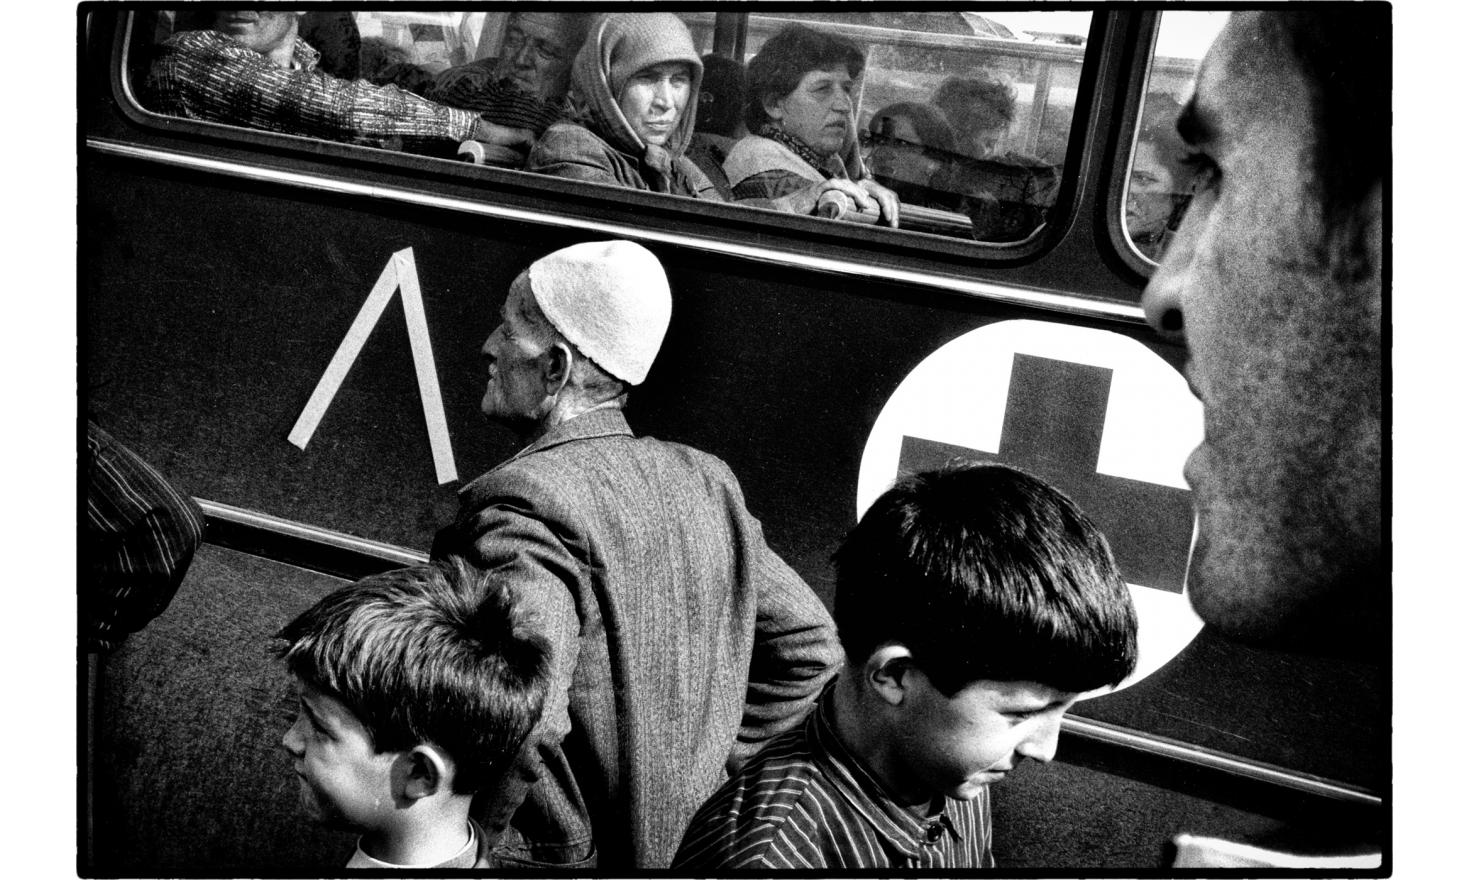 Albanian refugee waiting for a plane to Germany. Skopje, Macedonia. 04-1999